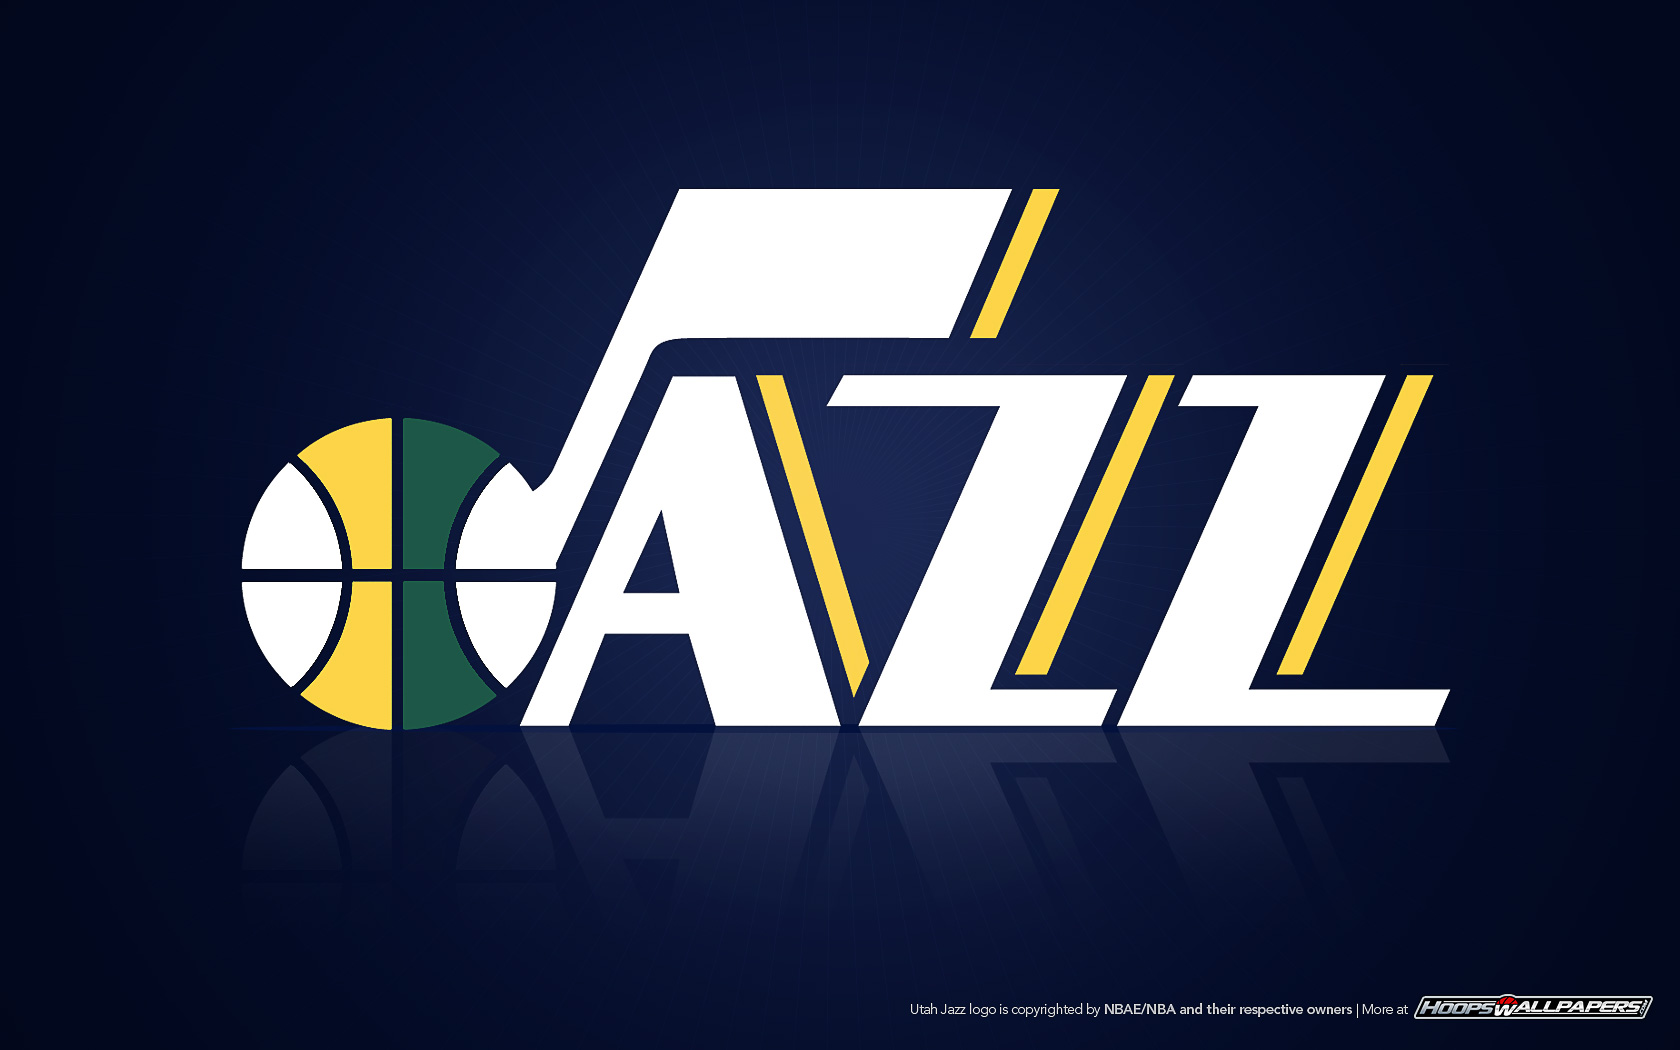 ... – Get the latest HD and mobile NBA wallpapers today! » Utah Jazz